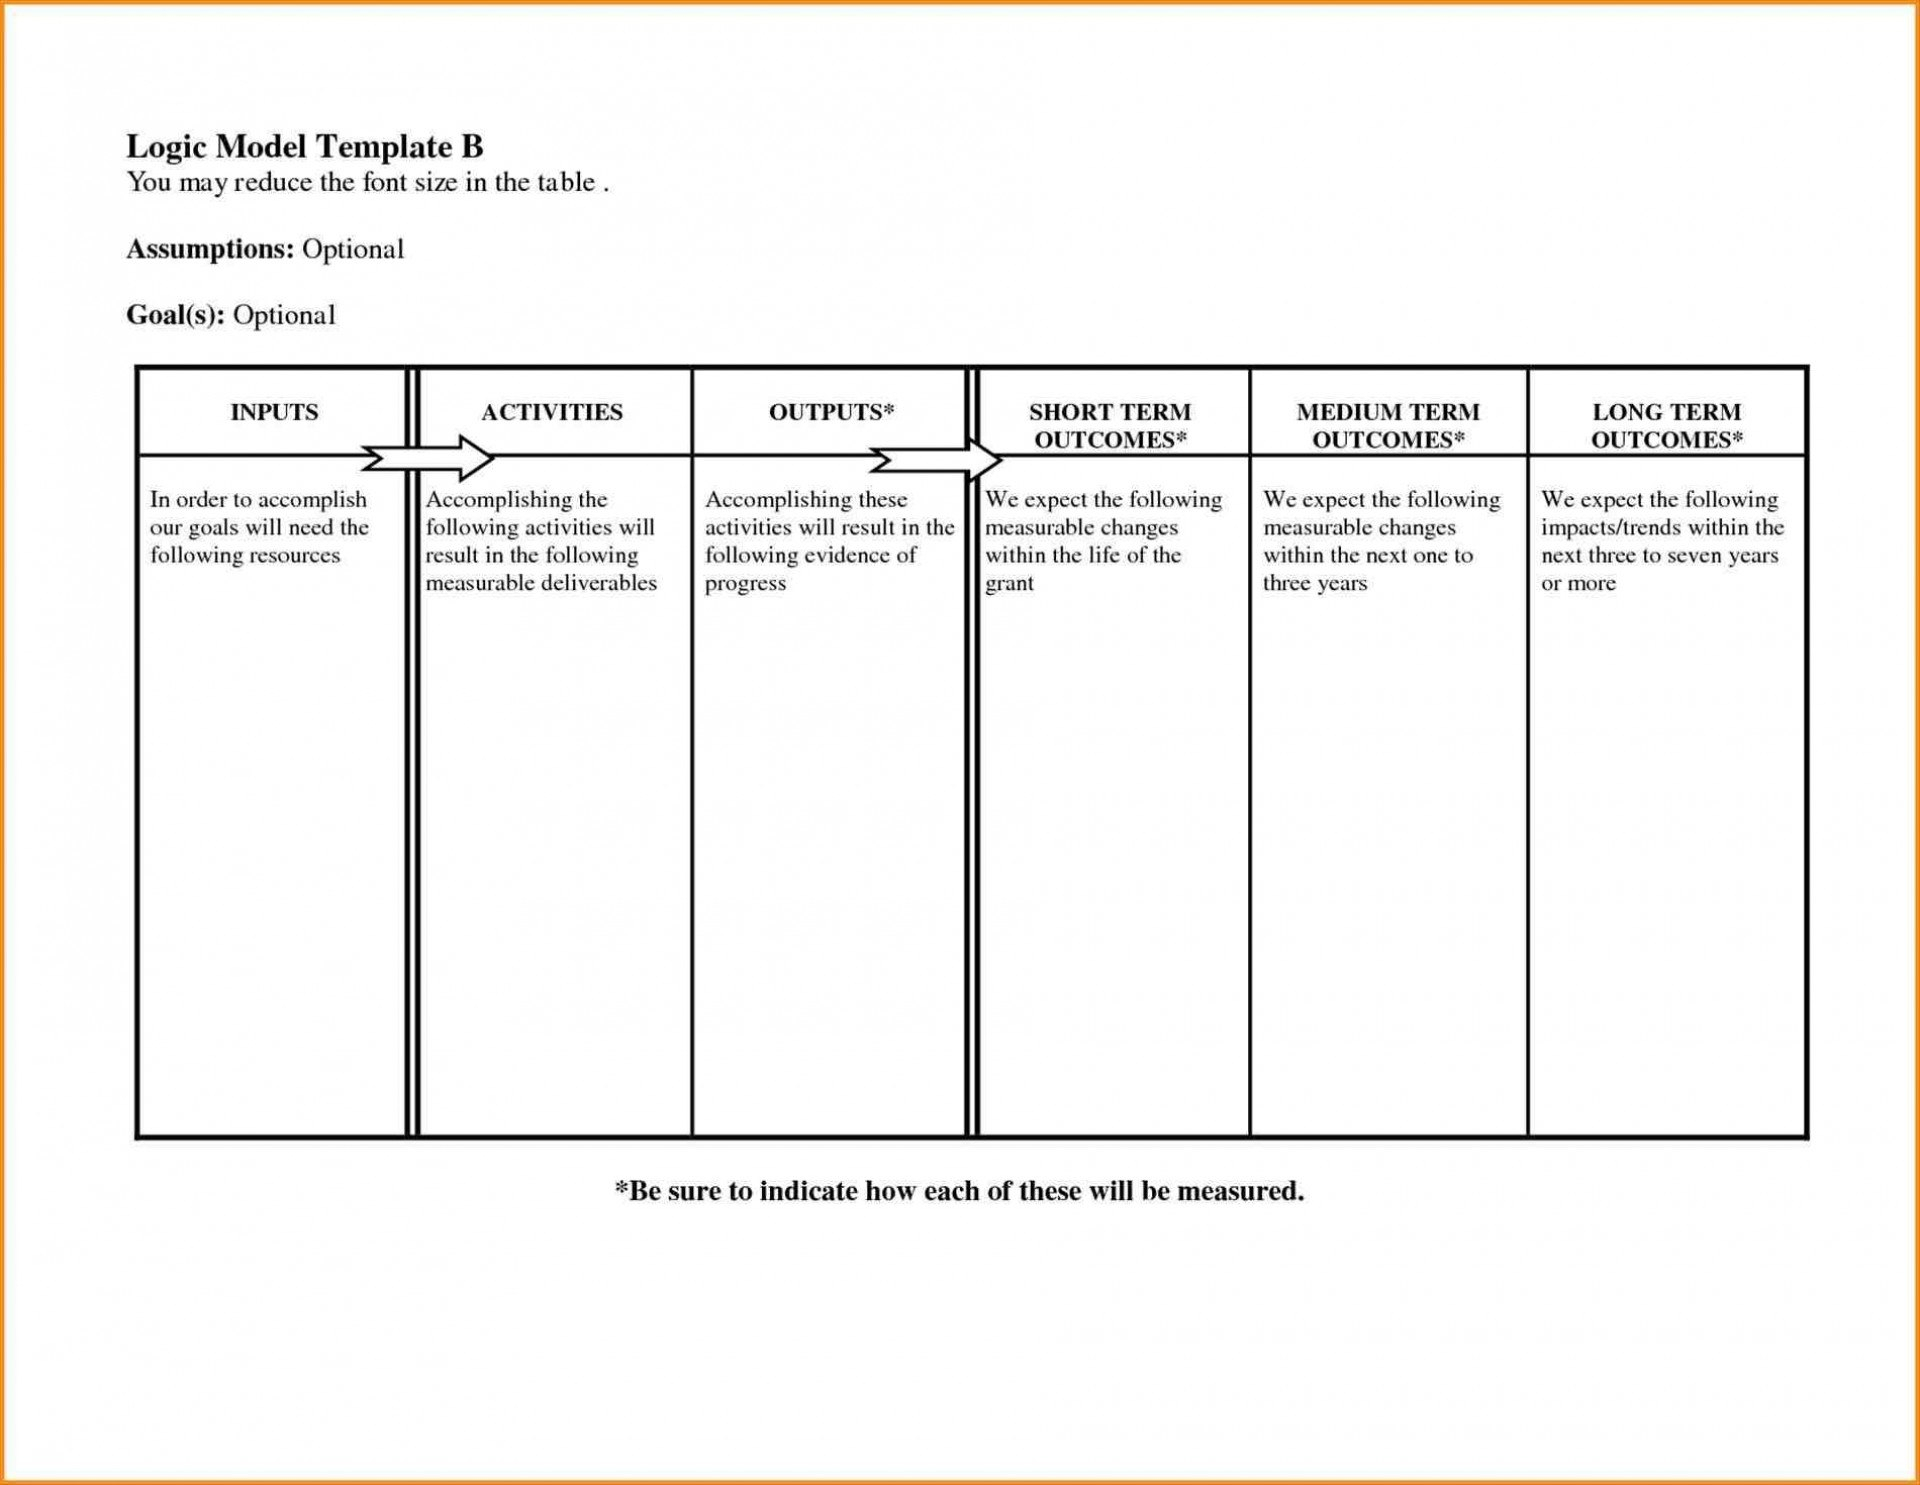 Awesome Logic Model Template Powerpoint Ideas Blank Resources Regarding Logic Model Template Word